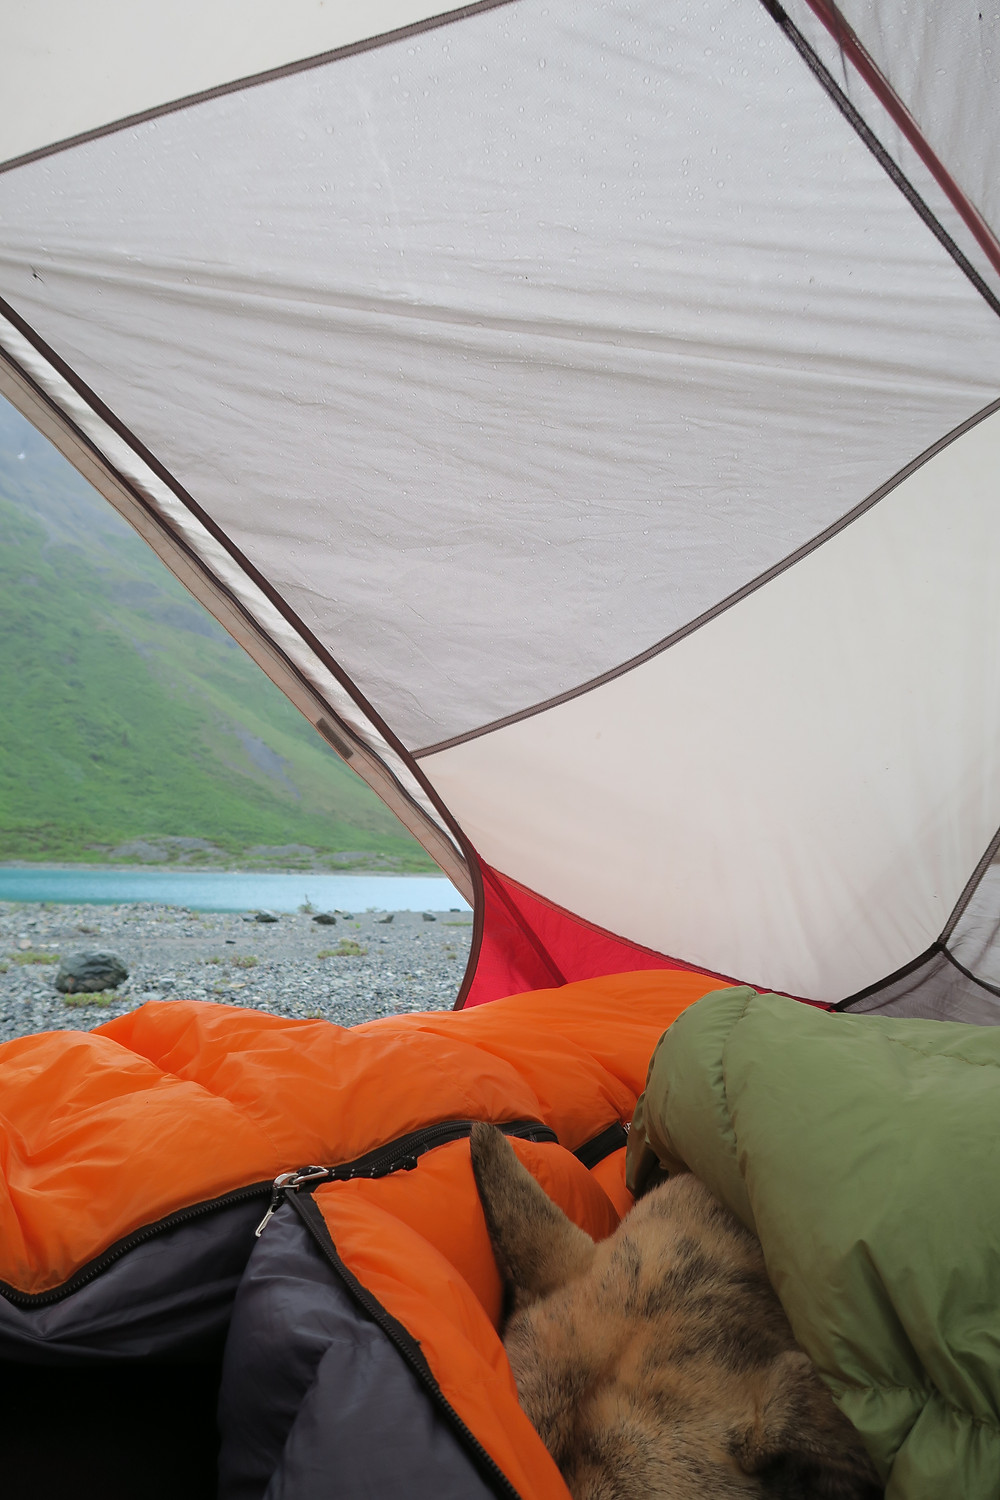 A blond dog is curled up inside a tent under a green quilt and an orange sleeping bag. A bright blue lake is visible in the near distance.